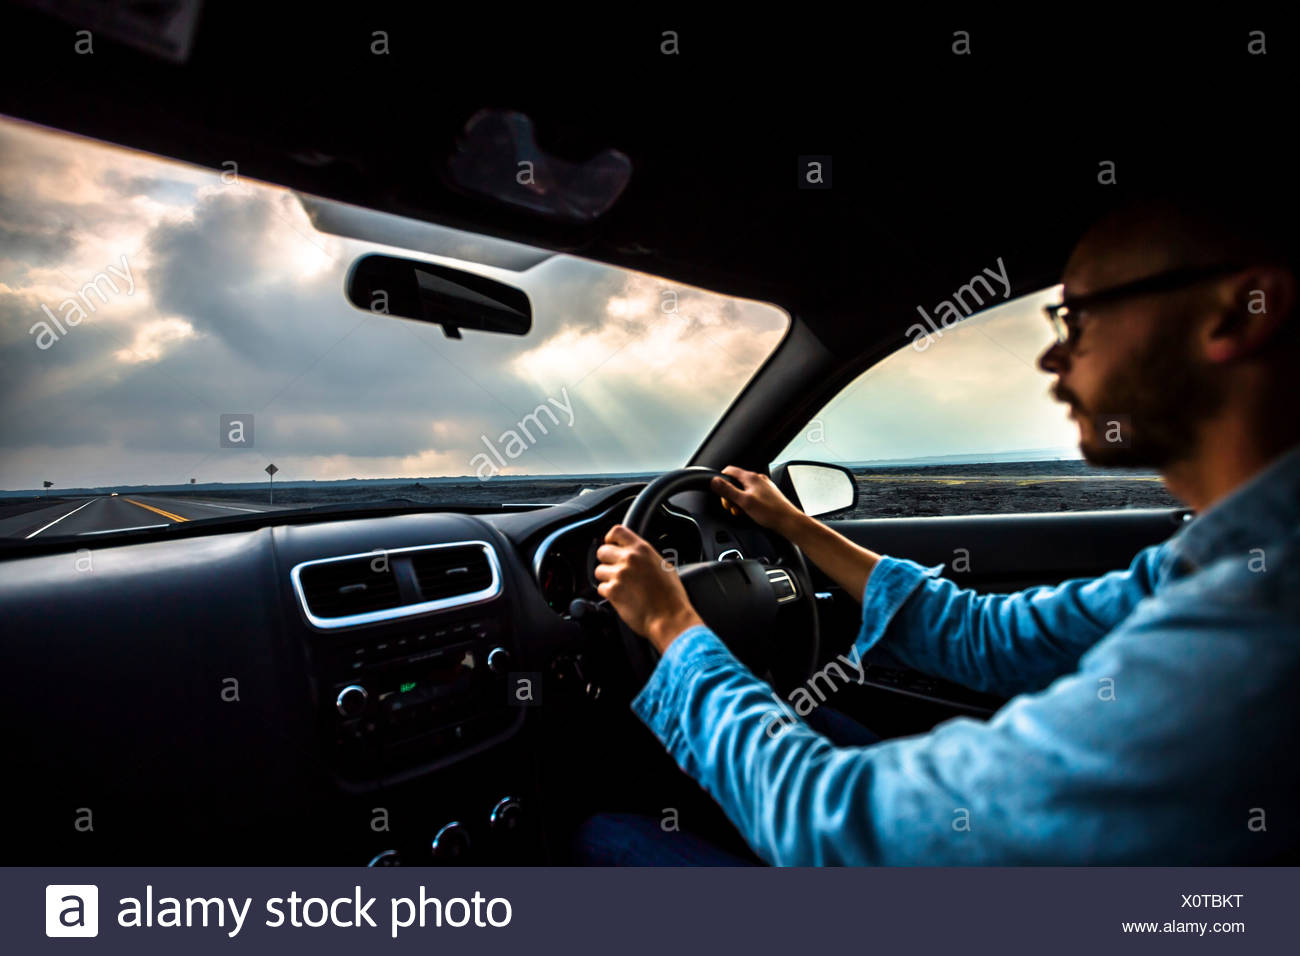 Mid adult man driving car Photo Stock